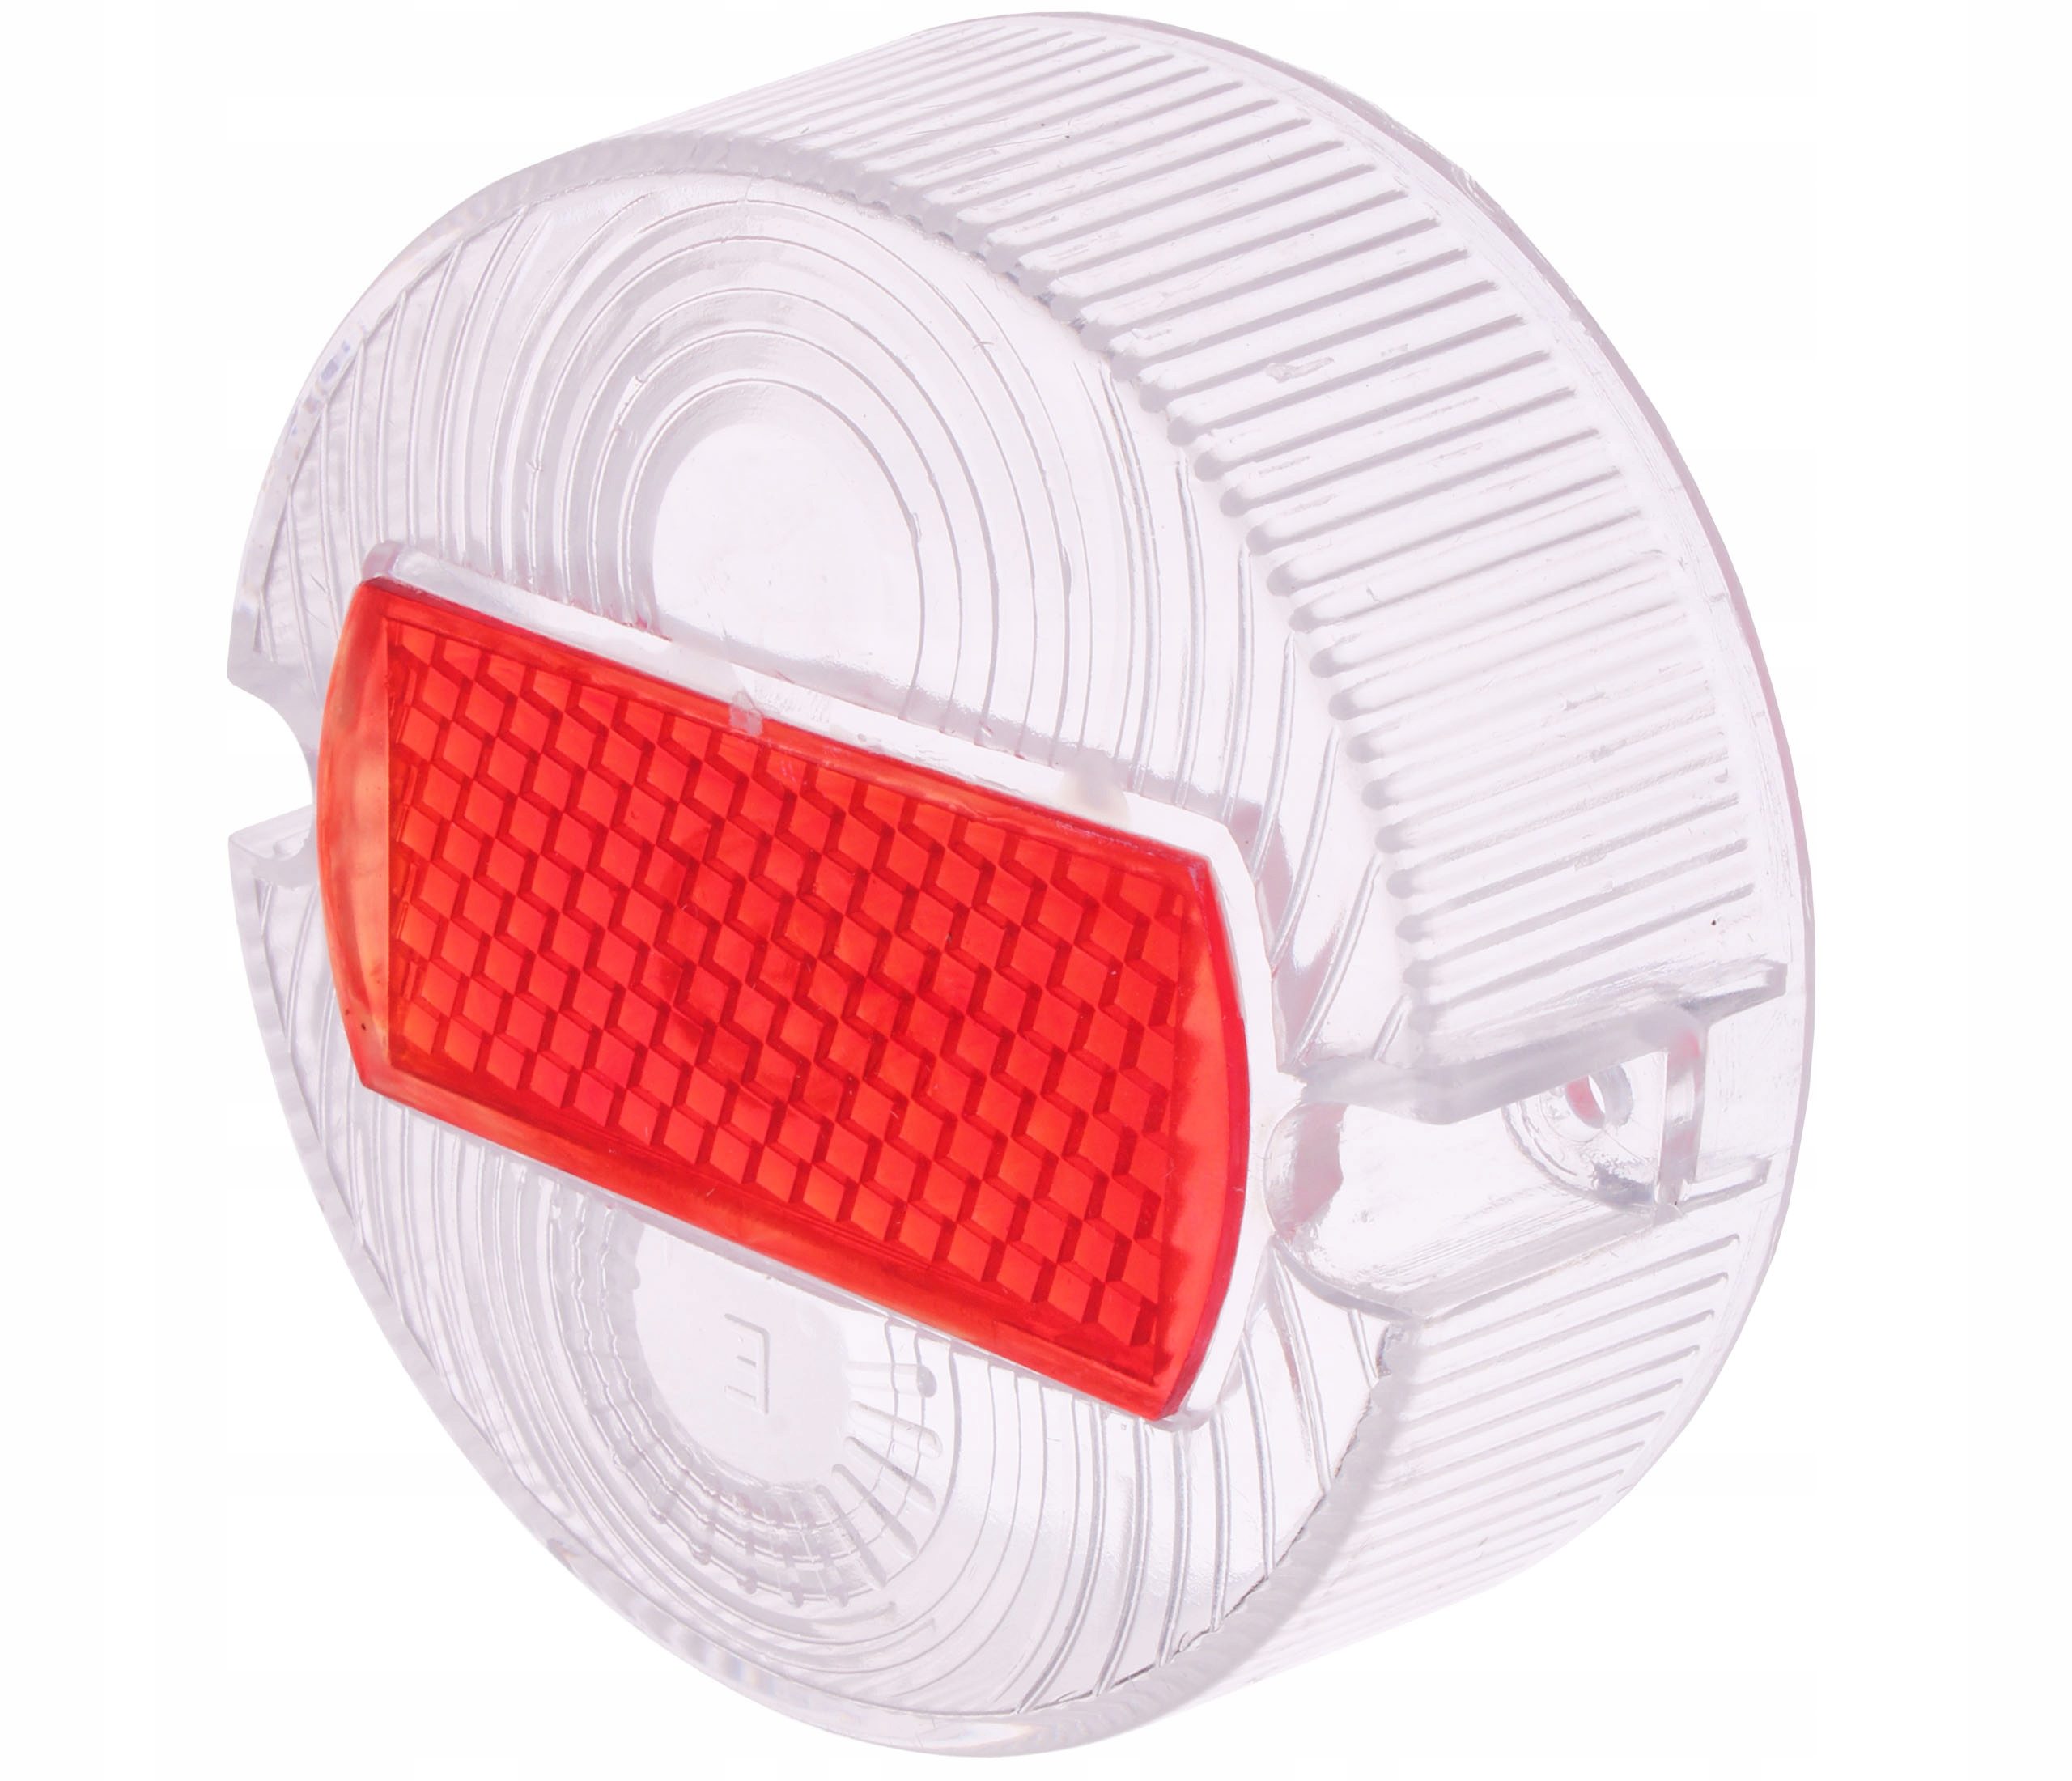 WHITE LAMPSHADE TAIL LIGHTS SIMSON S50 KR51/1 MZ TS 250